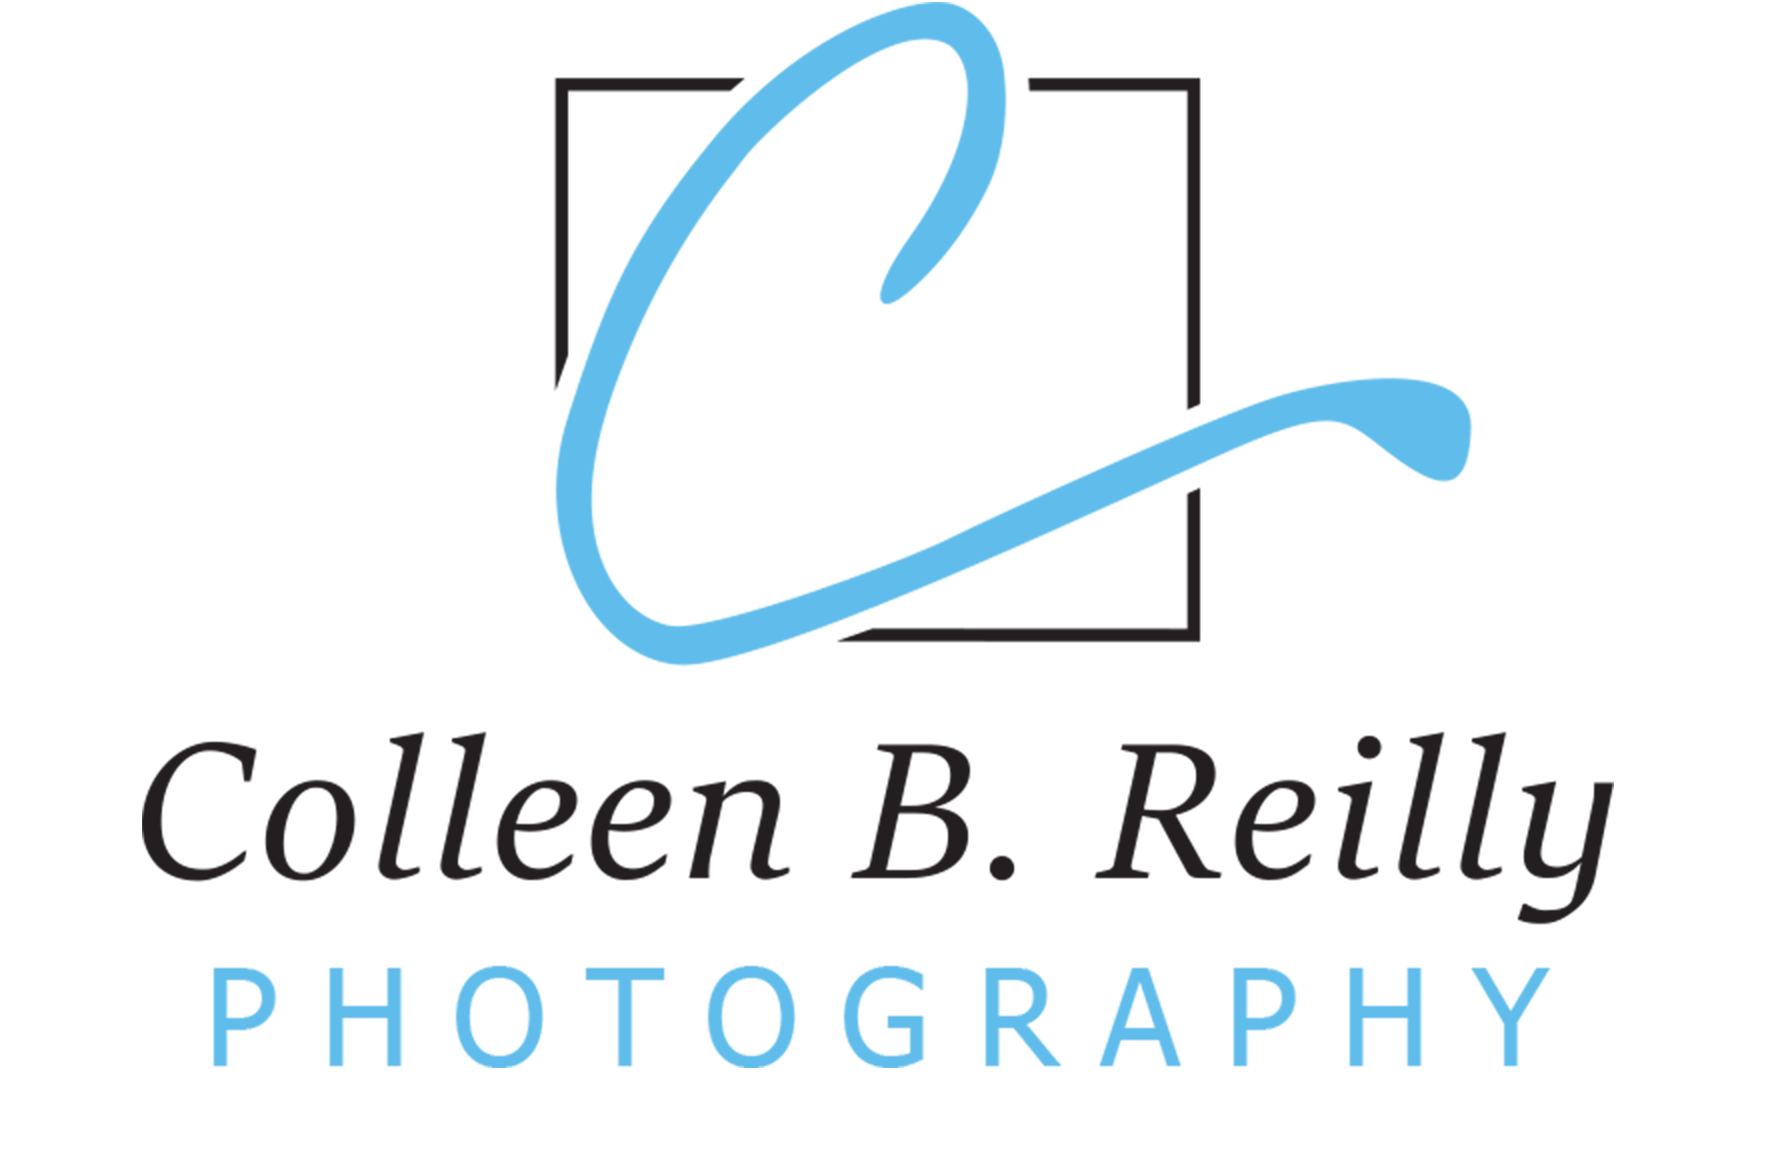 Colleen B. Reilly Photography